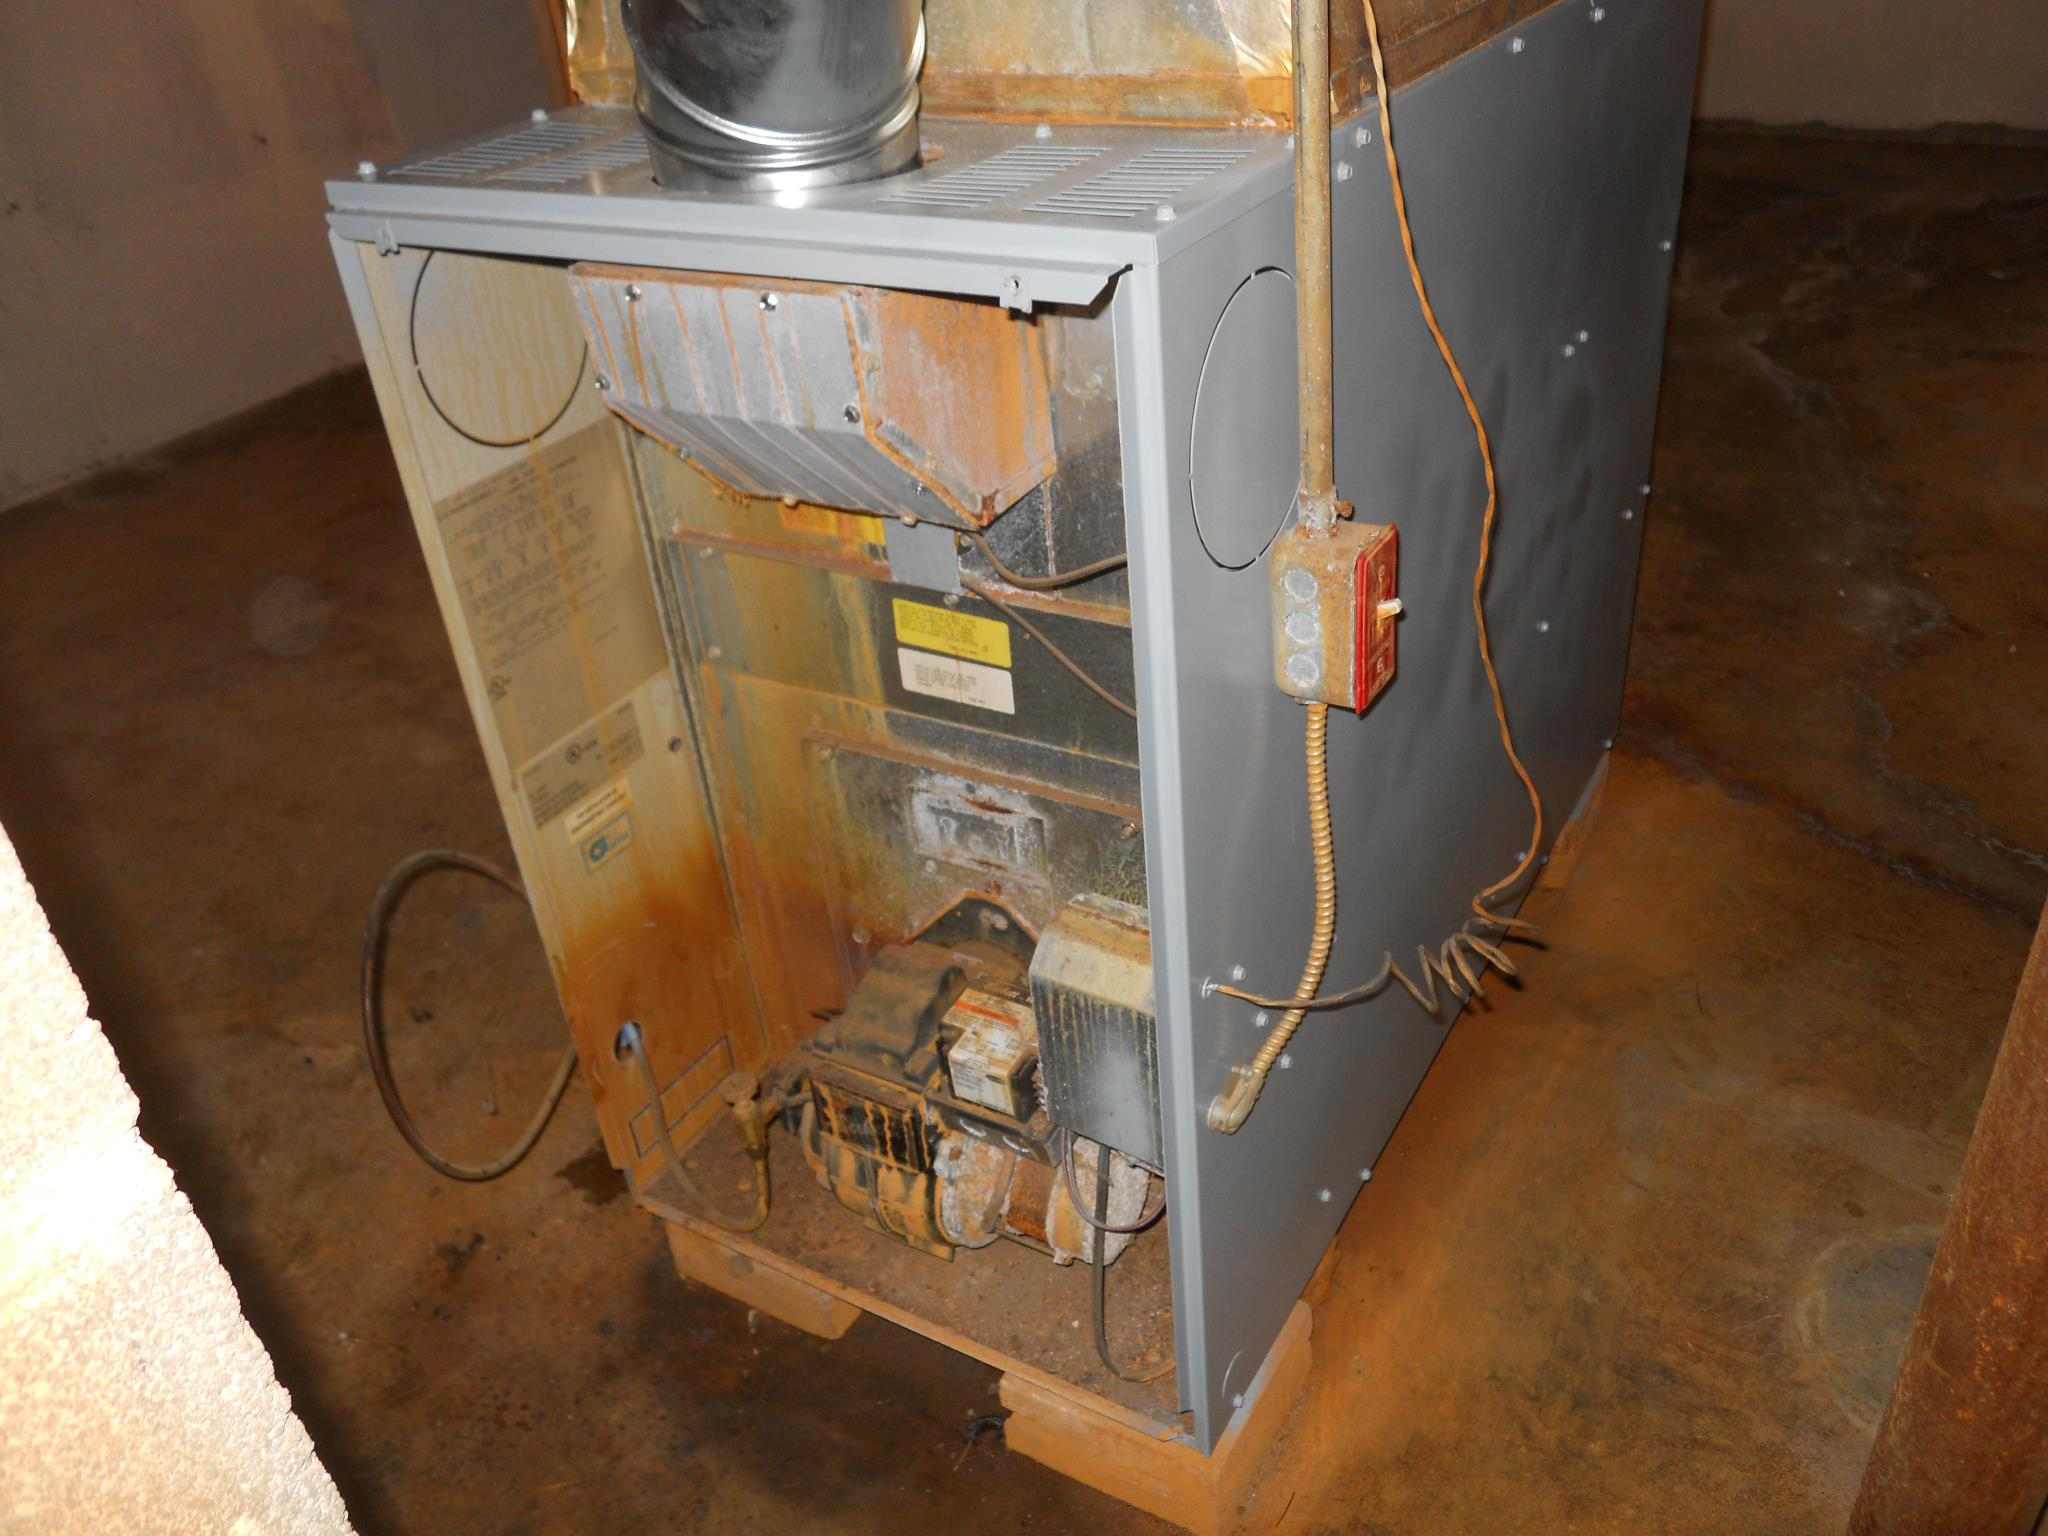 Furnace Inspections in Dracut MA